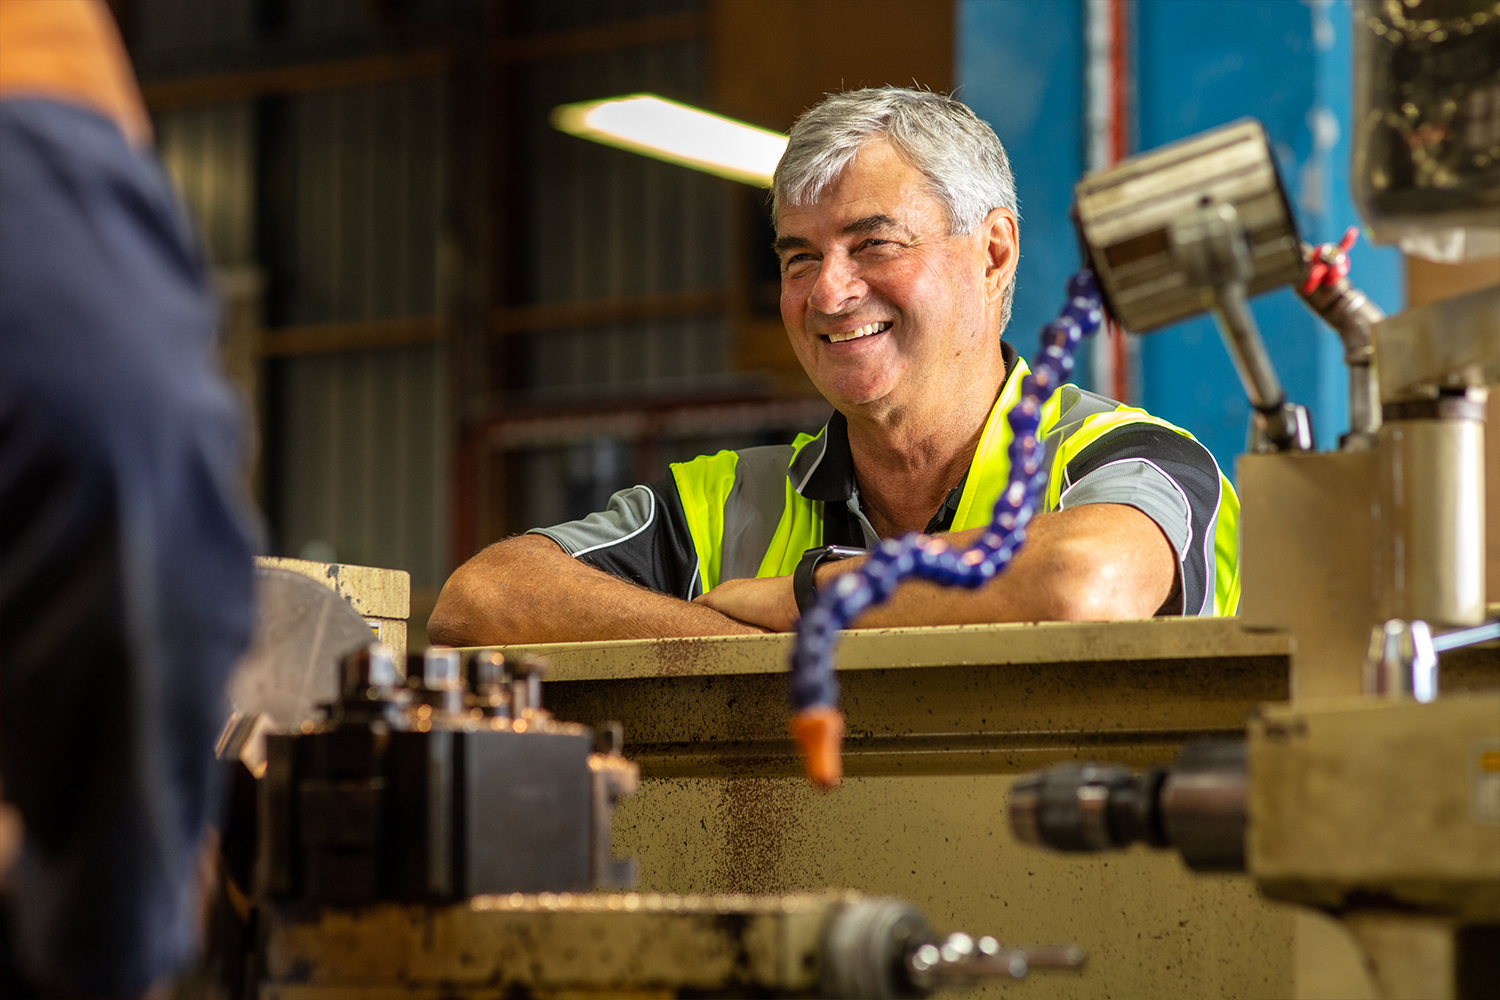 mark teeceowner / director - Mark has an extensive background in mining and marine engineering. Mark has been a Chief Engineer, Assistant Superintendent and then Superintendent for Sealords looking after a fleet of vessels ranging from 42mtrs to 90mtrs and up to 10 vessels both in New Zealand and International waters.While Mark is busy with Aimex he still contracts back to Sealords to manage the engineering requirements on a deep sea trawler working out of Mauritius. With Marks excellent knowledge, he commenced working at Aimex in 2014 as a Technical Director, however Mark has been a part owner of the business since 2003.